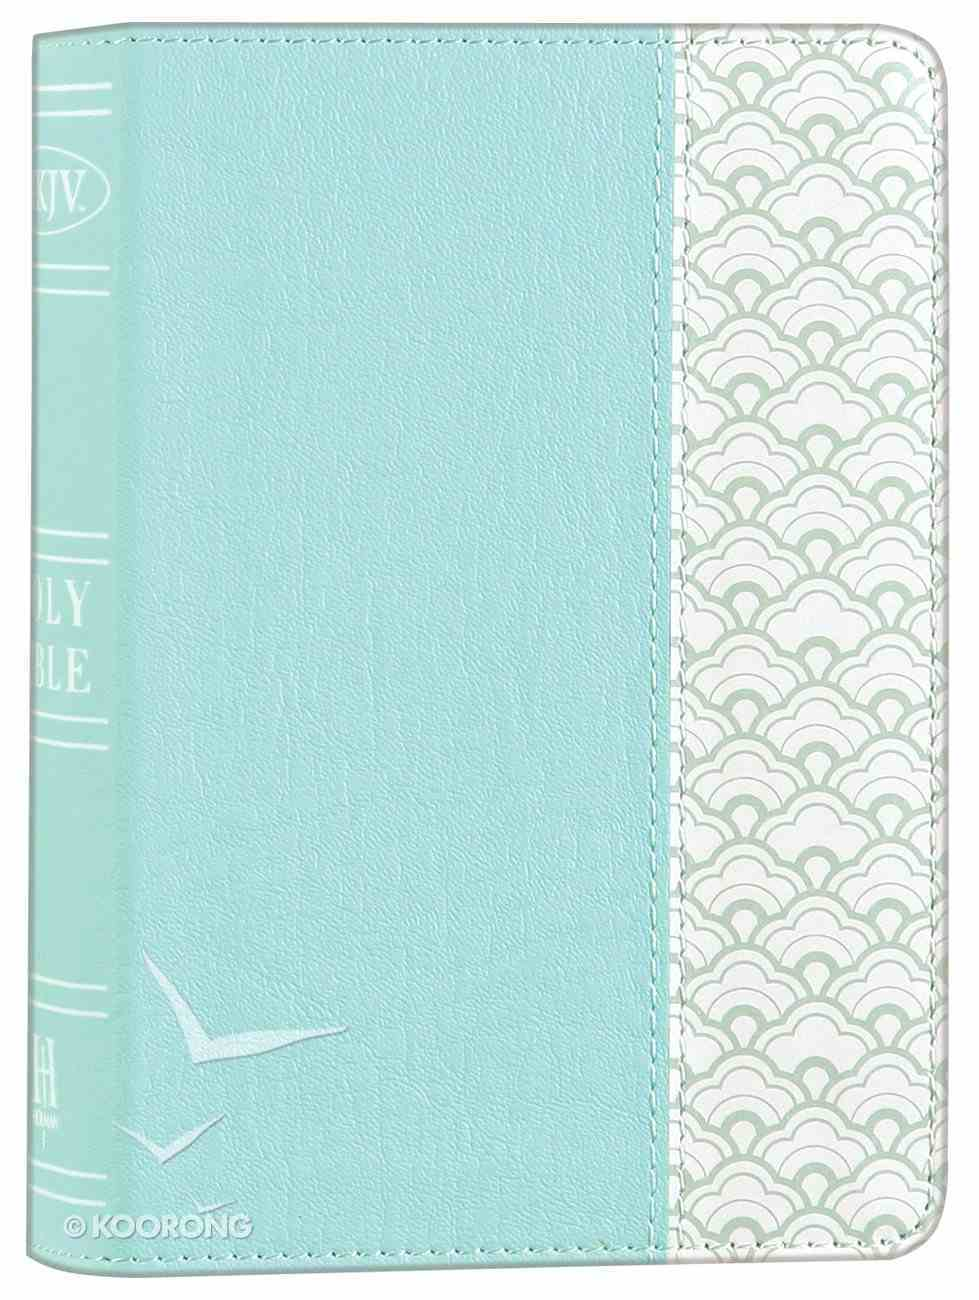 NKJV Large Print Compact Reference Bible Mint Green Premium Imitation Leather